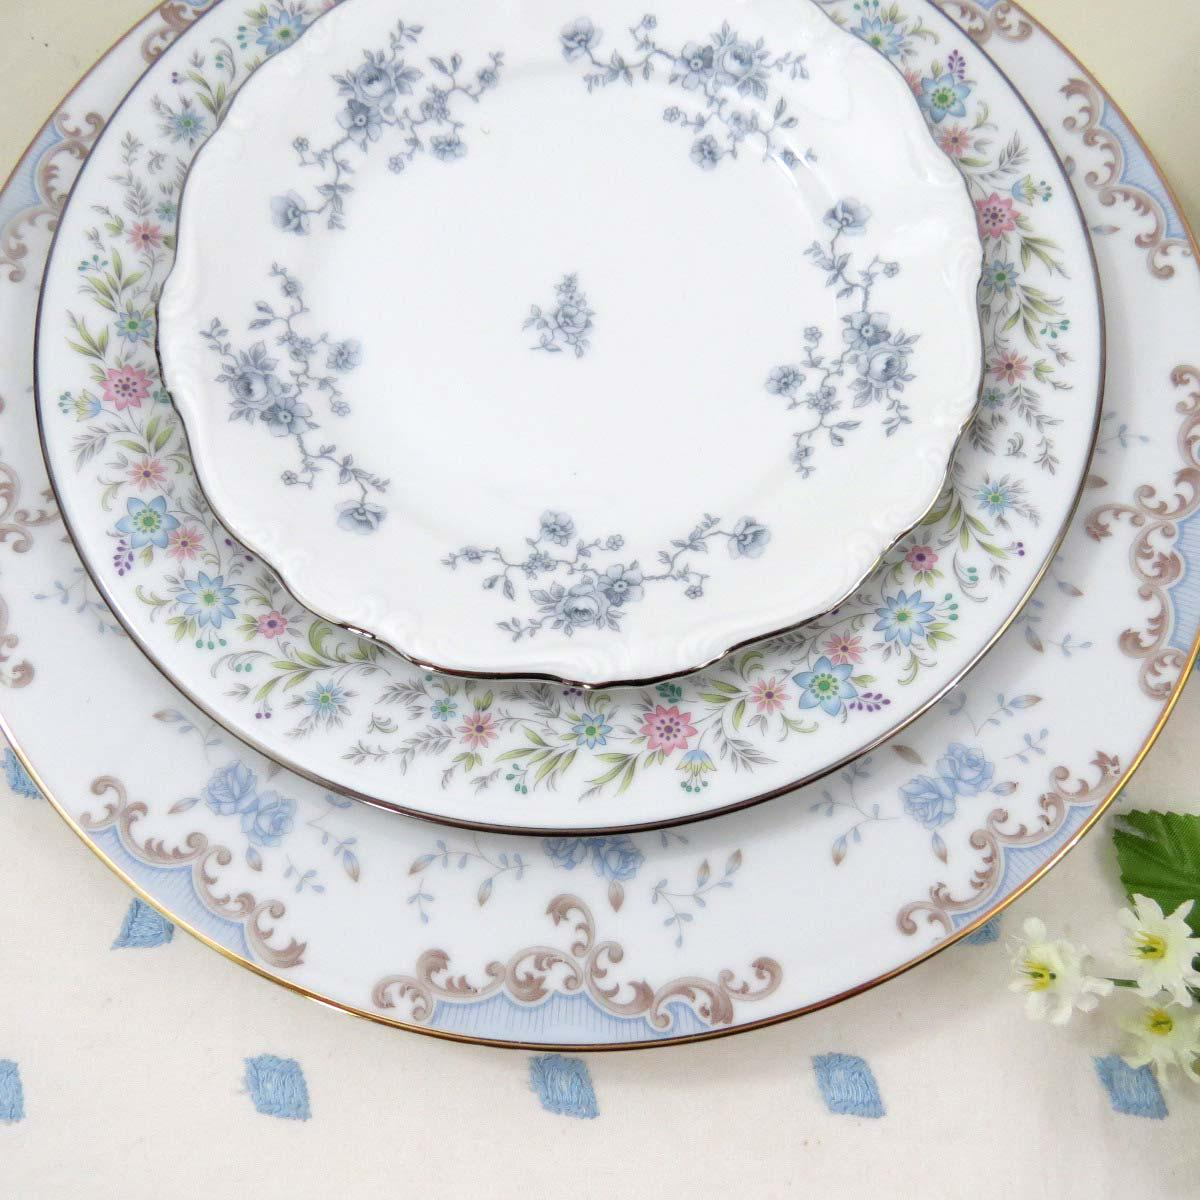 Vintage Mismatched Fine China Dinnerware Set - Service for 4 - Image 3 of 11  sc 1 st  Chairish & Vintage Mismatched Fine China Dinnerware Set - Service for 4 | Chairish